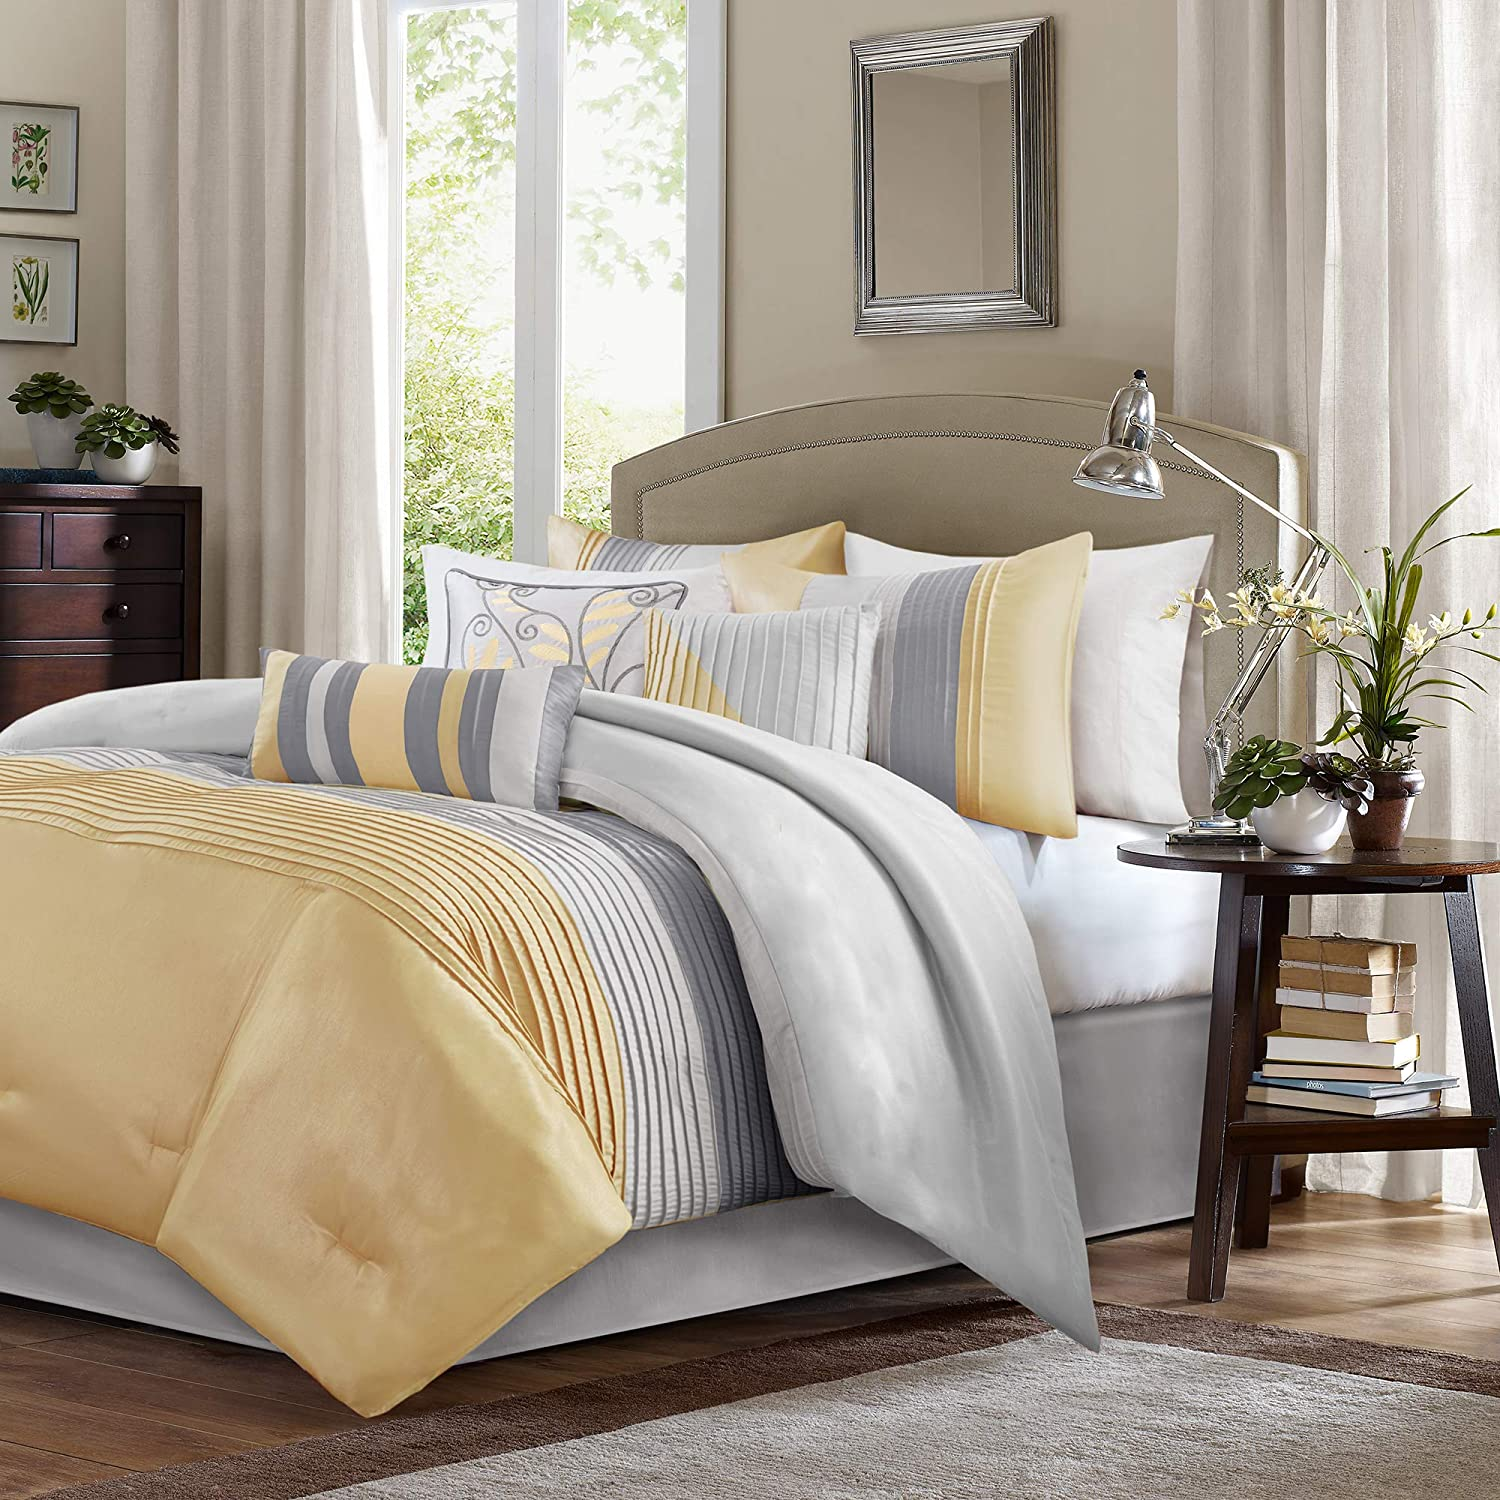 Madison Park Amherst 7 Piece Comforter Set, Yellow, Queen